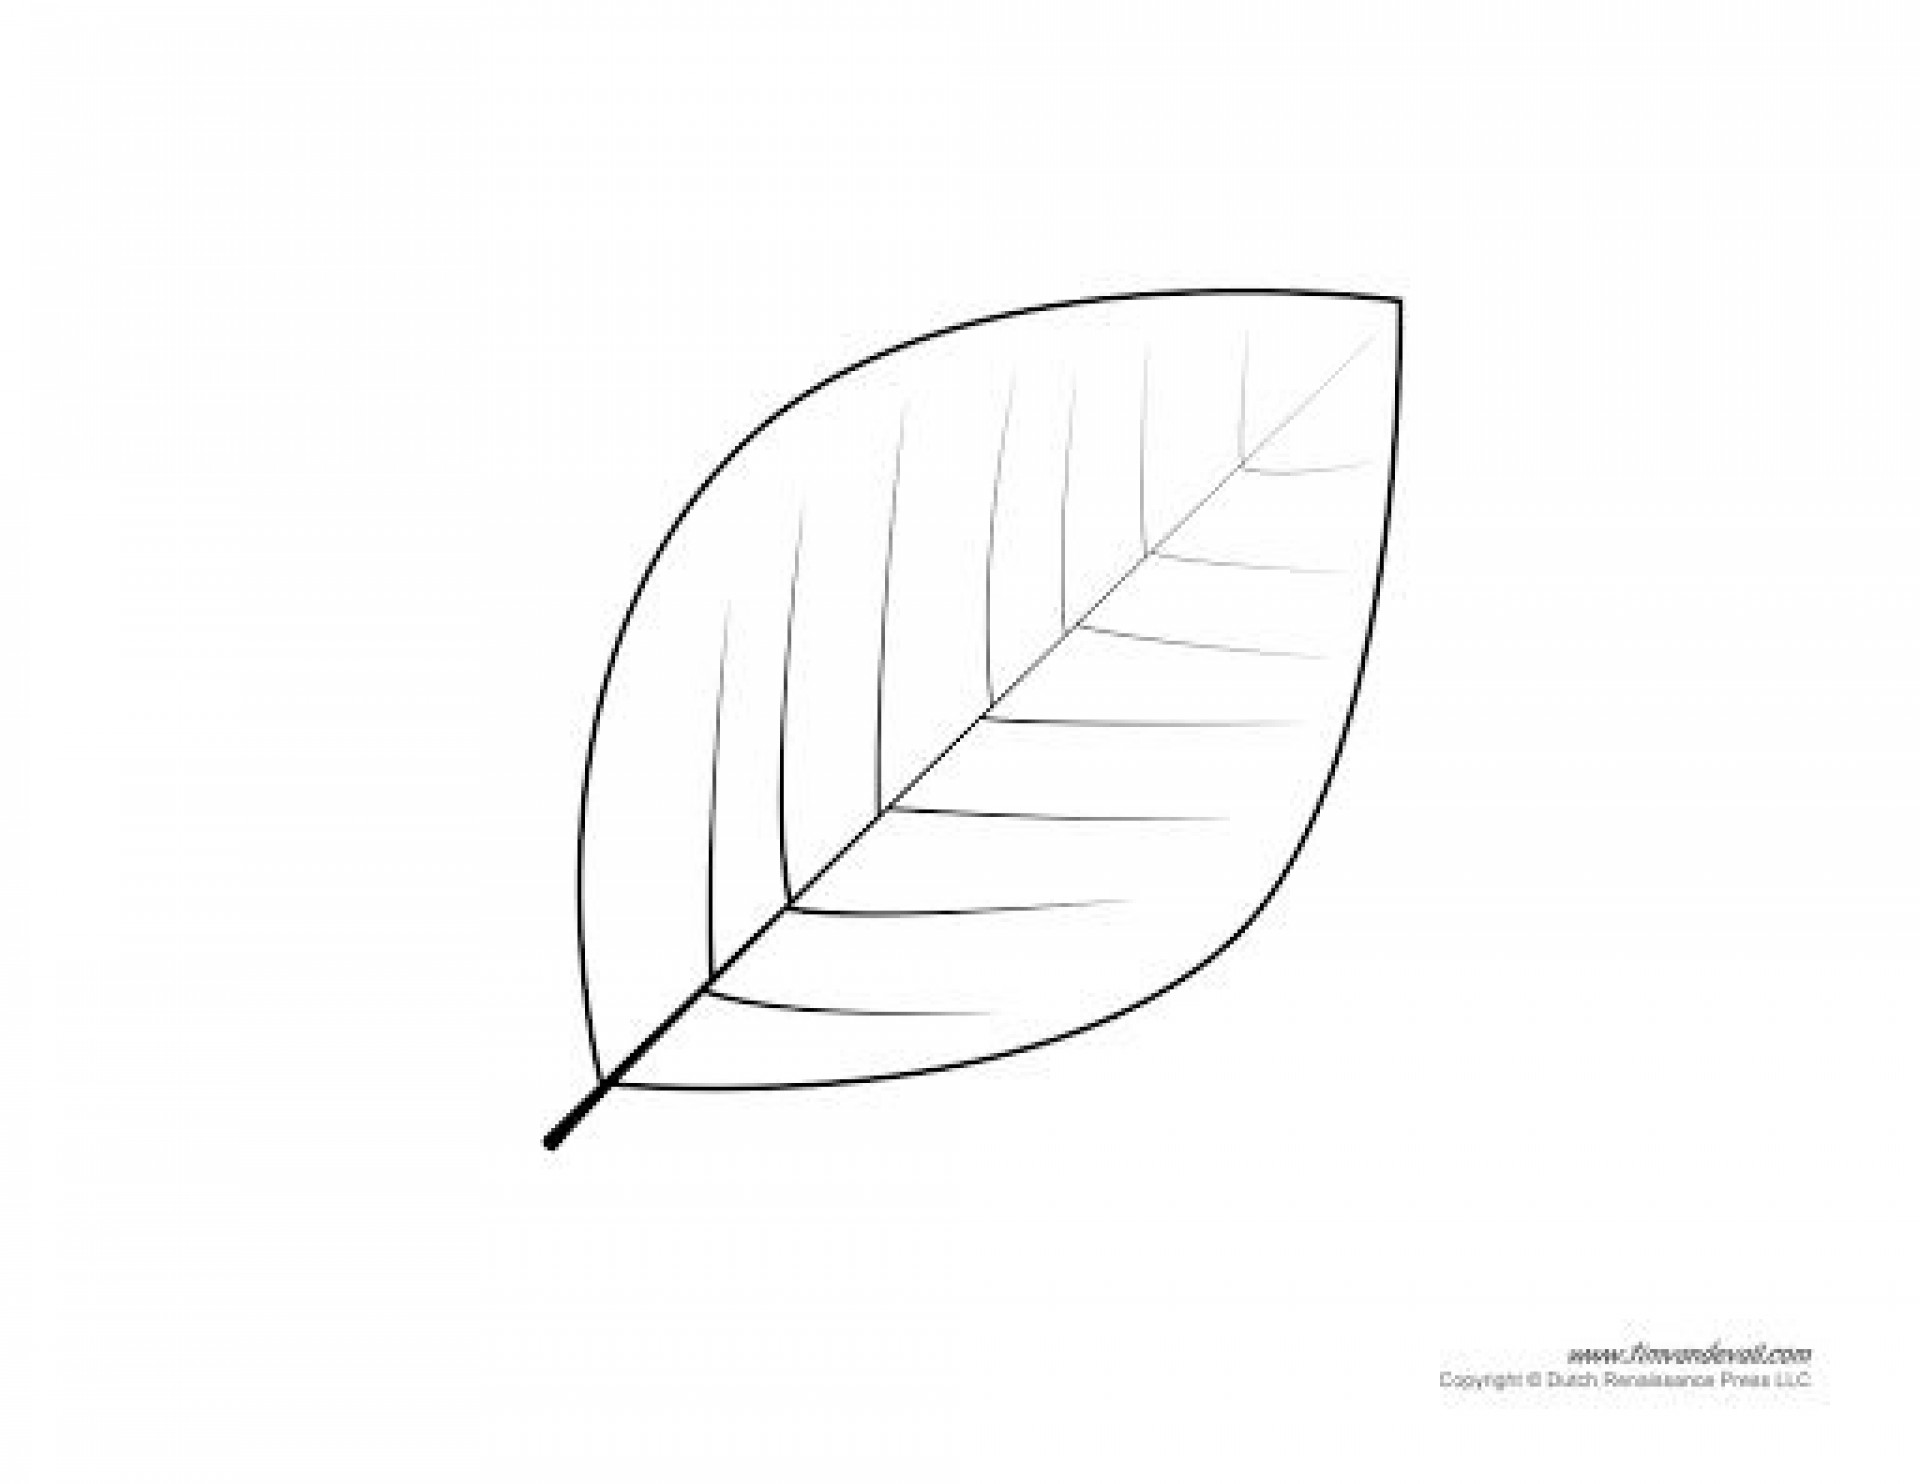 009 Amazing Leaf Template With Line Idea  Fall Printable Blank1920